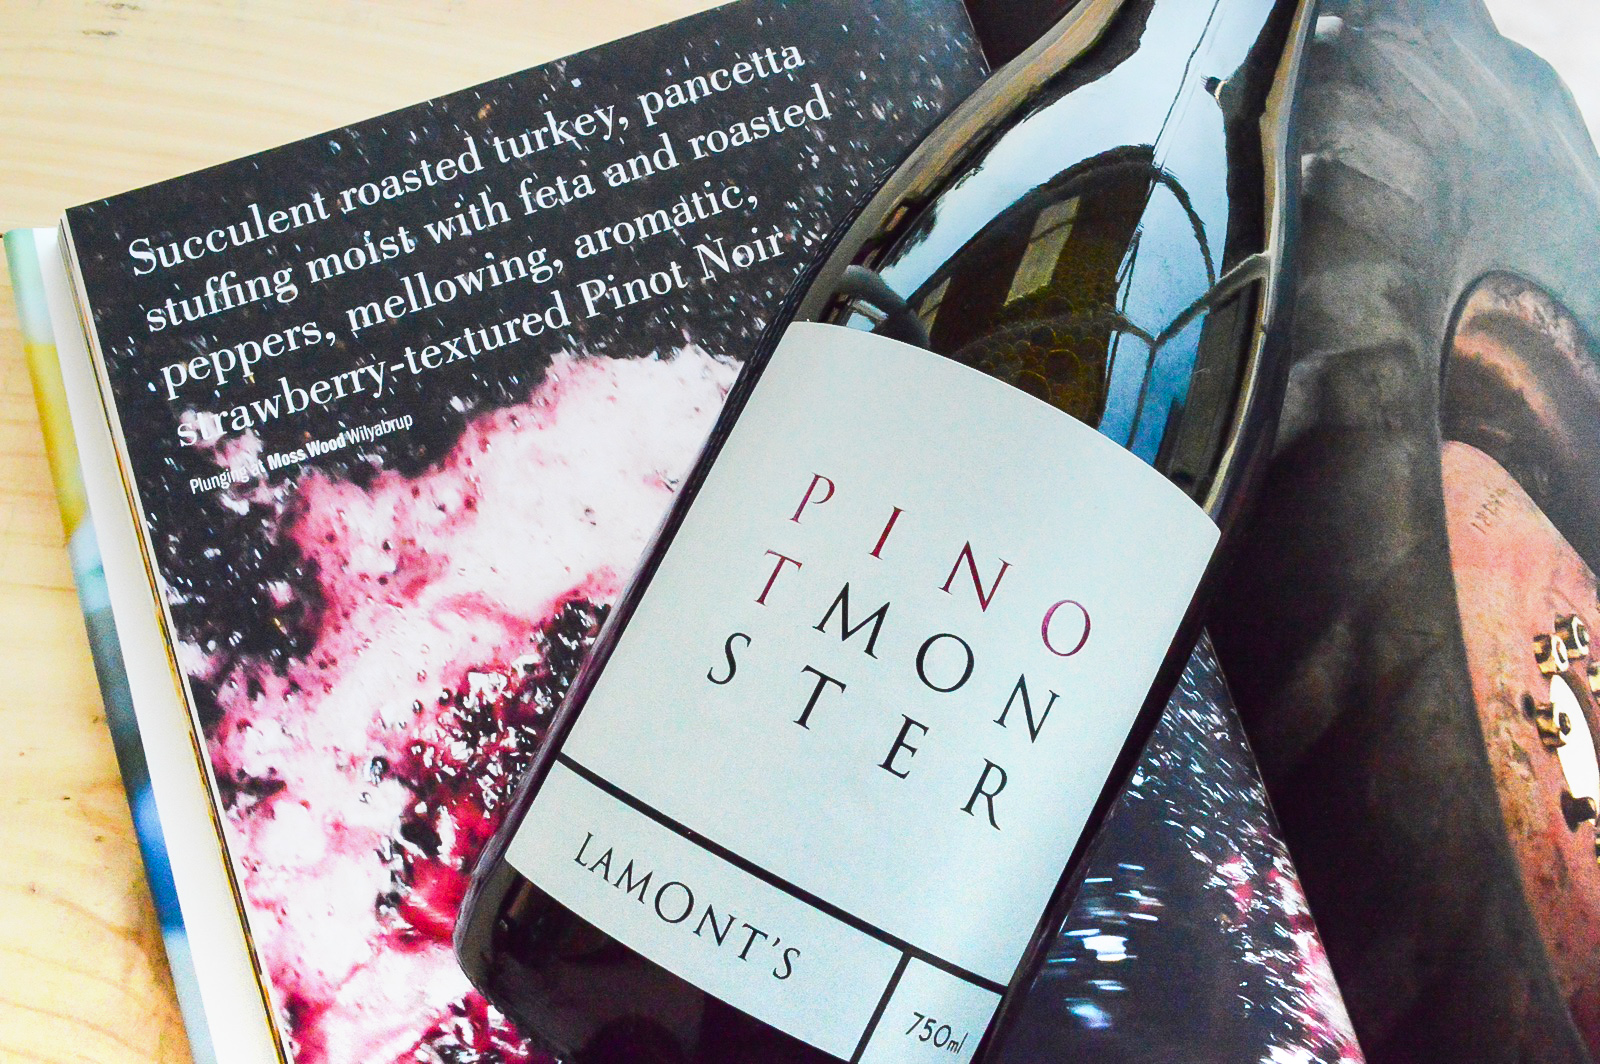 New release 2018 Pinot Monster, sourced form luscious Pemberton fruit $45 per bottle - Availability: Available for a limited time at our Swan Valley venues